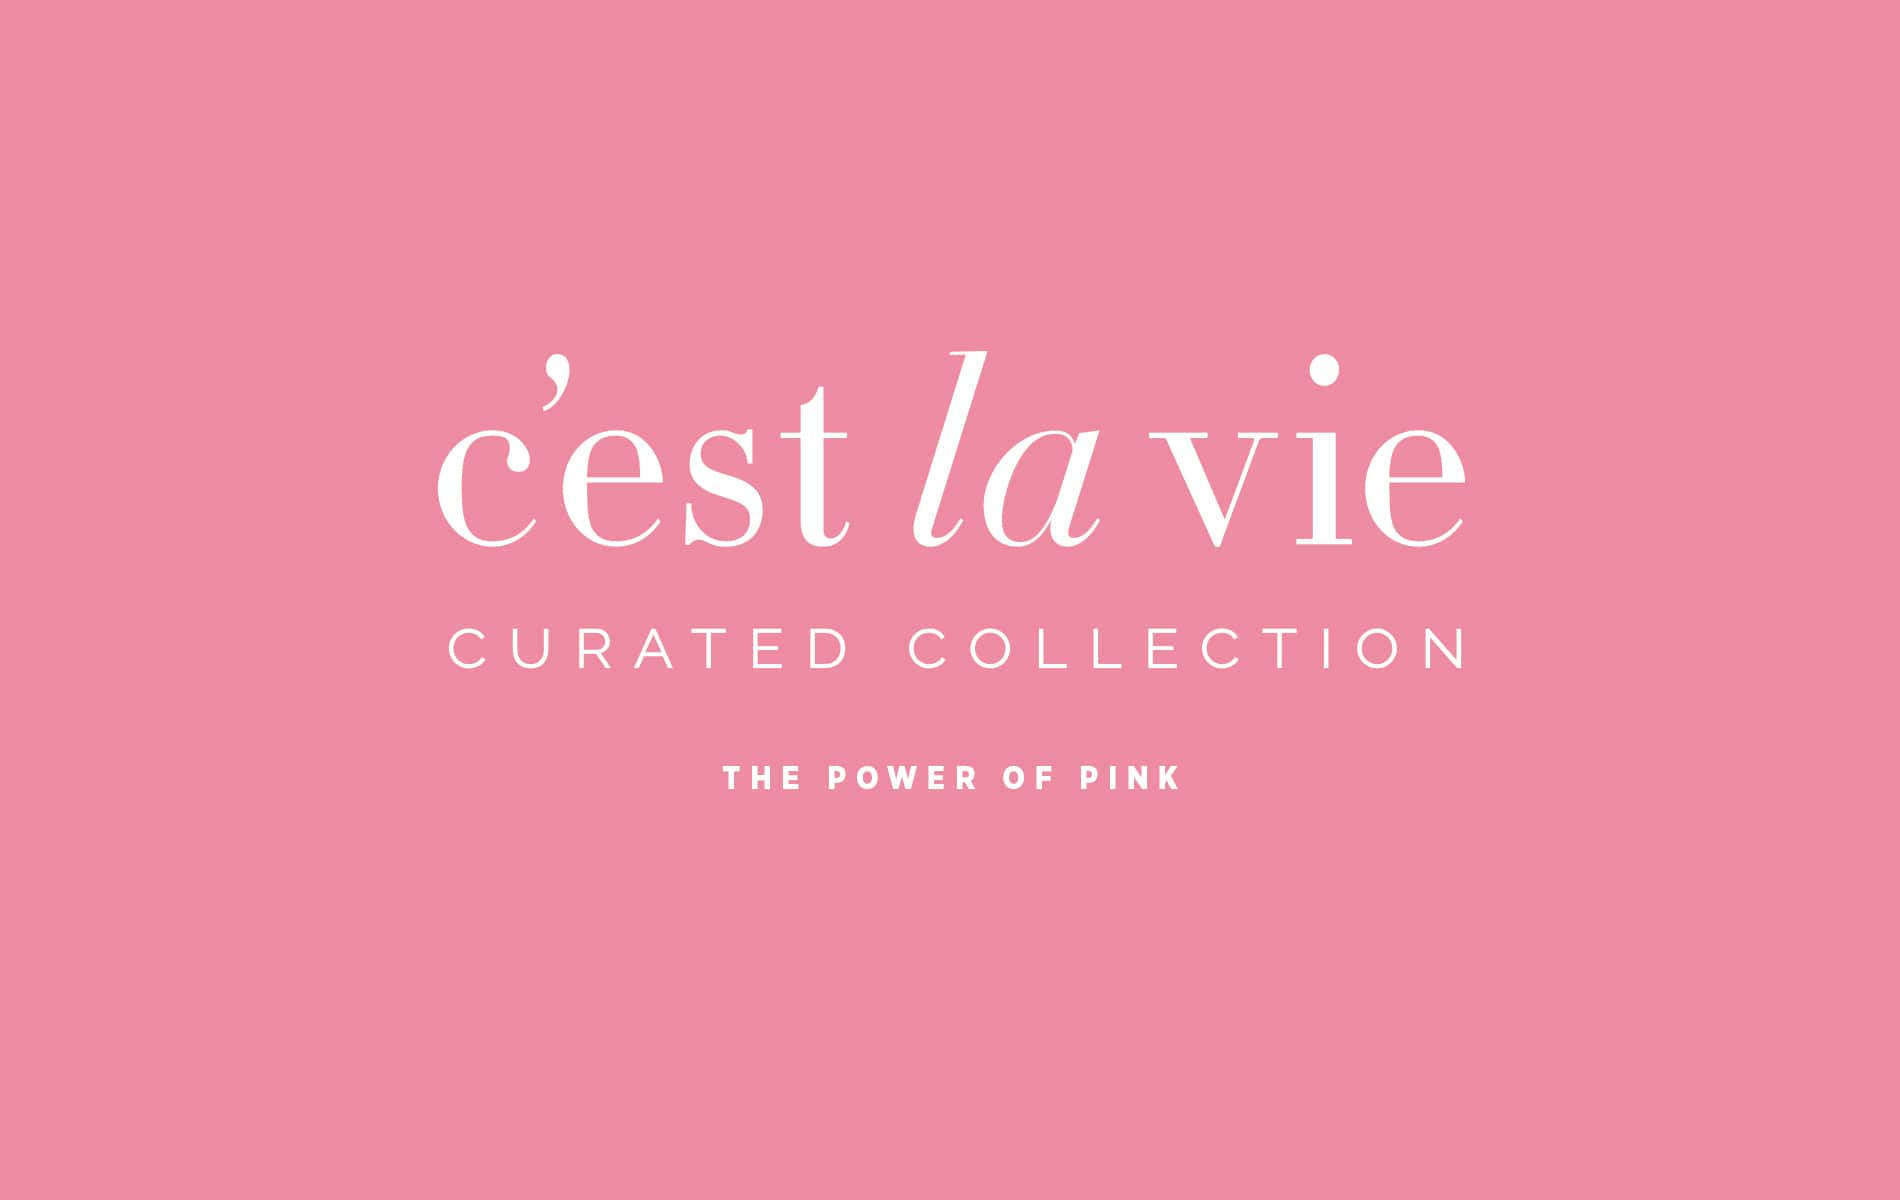 VIE Magazine C'est la VIE A Curated Collection The Power of Pink, Breast Cancer Awareness